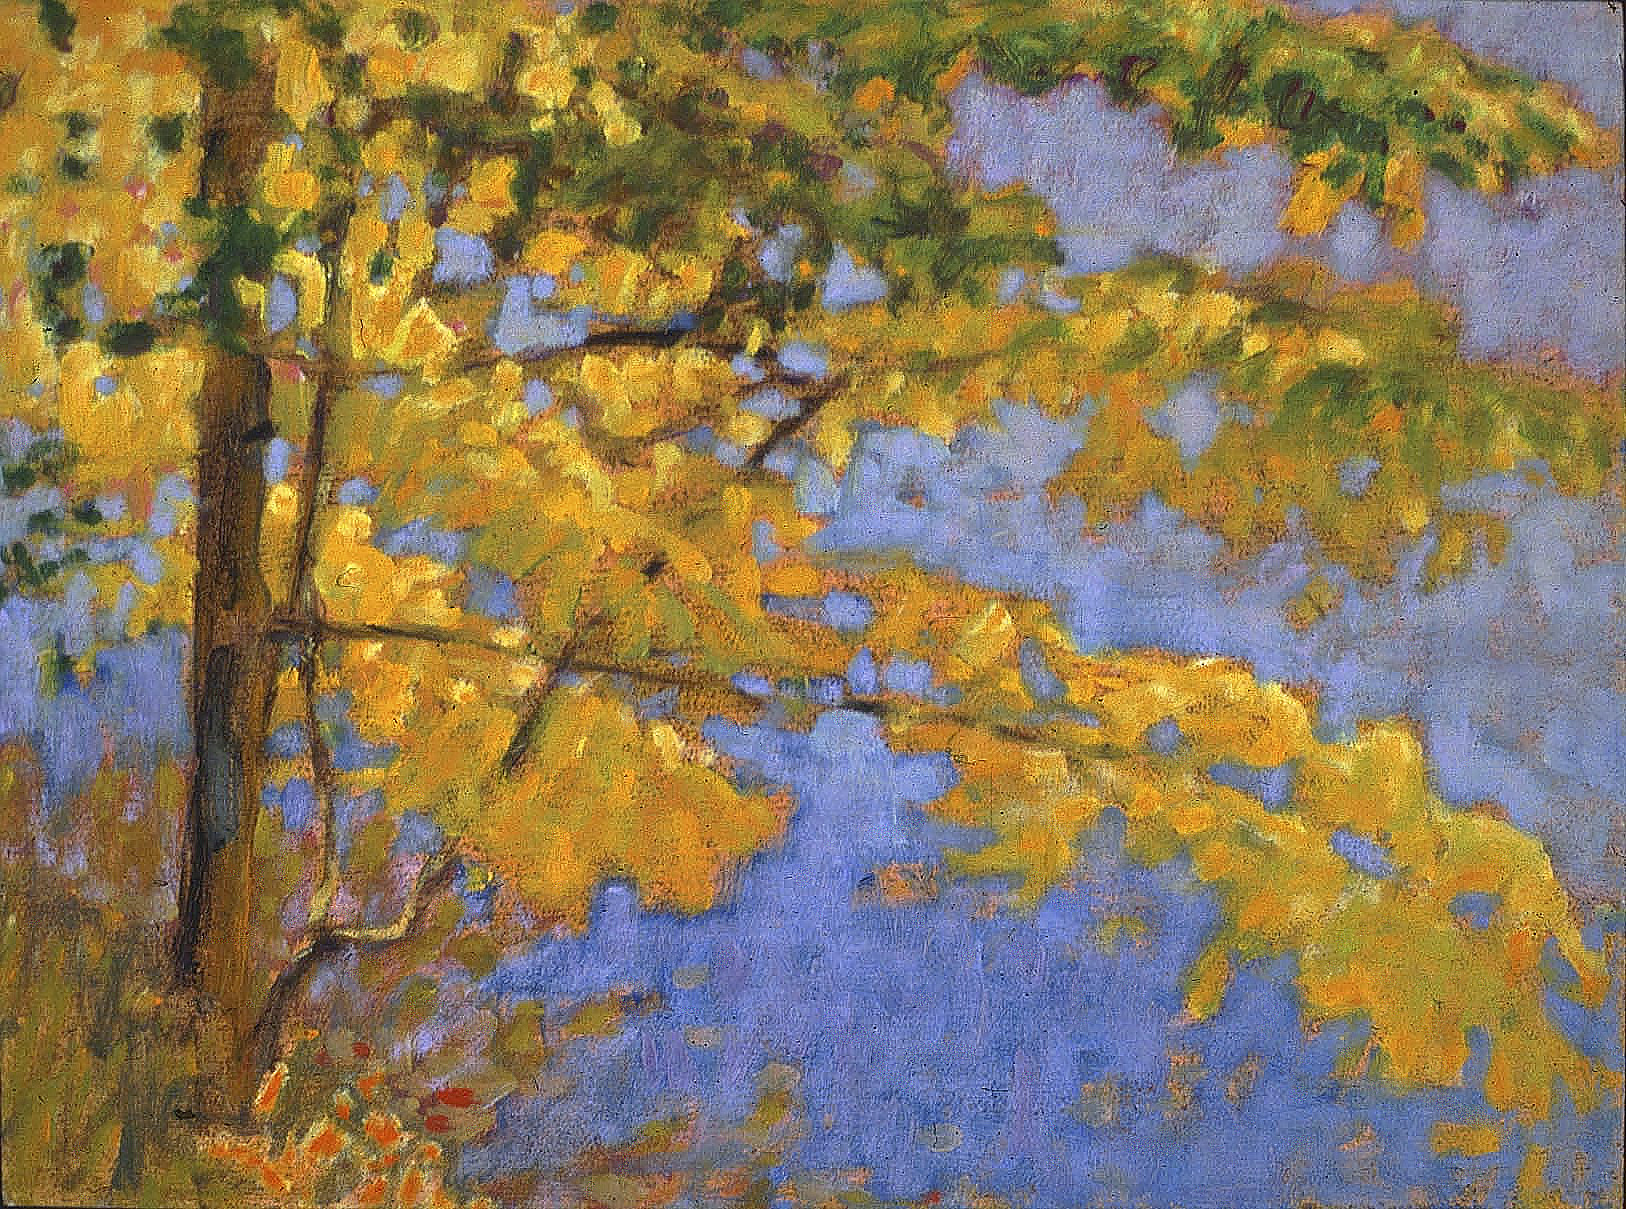 Yellow Against Blue   | oil on canvas | 12 x 15"